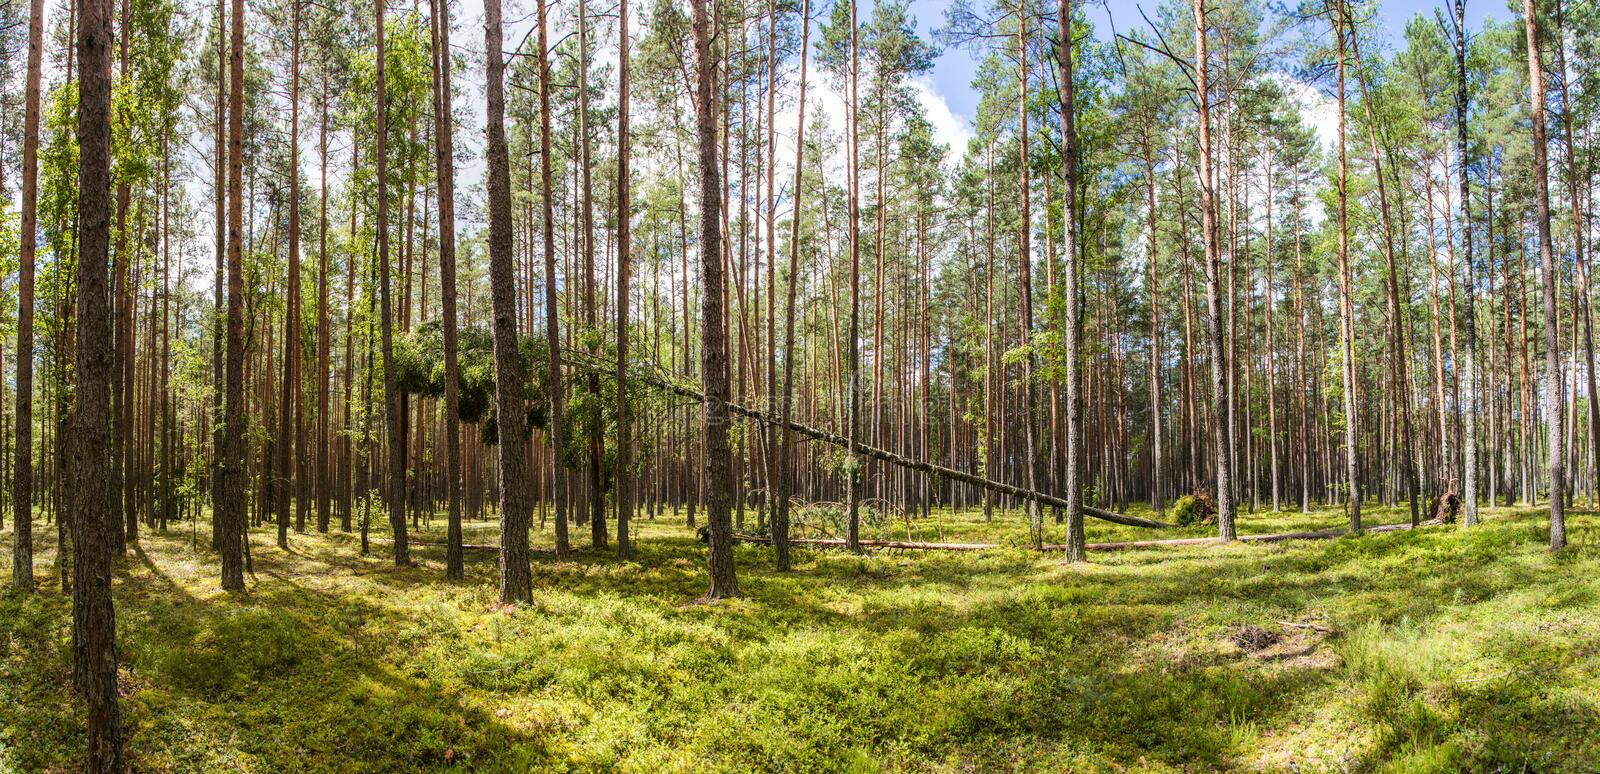 green trees and vegetation in beautiful forest, naliboki stock photography